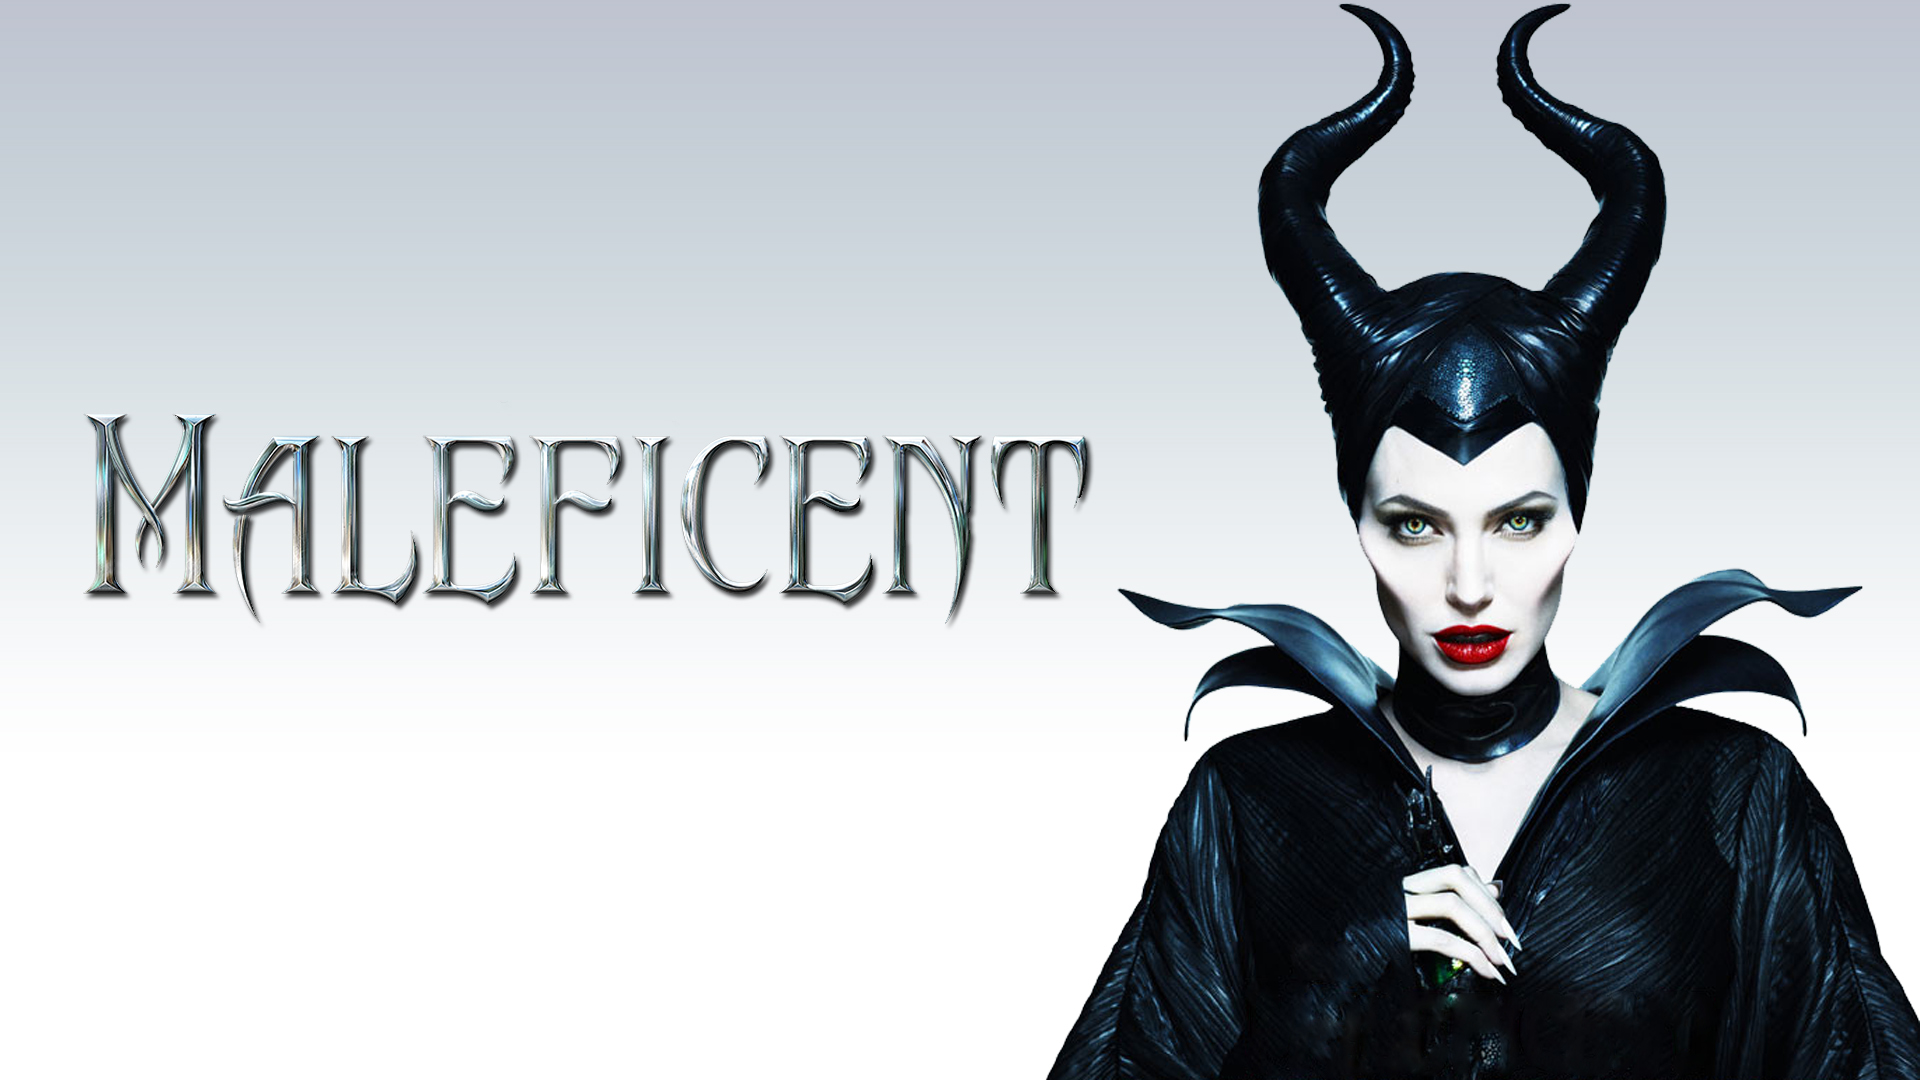 MaleficentWallpaper by jefftercero on DeviantArt